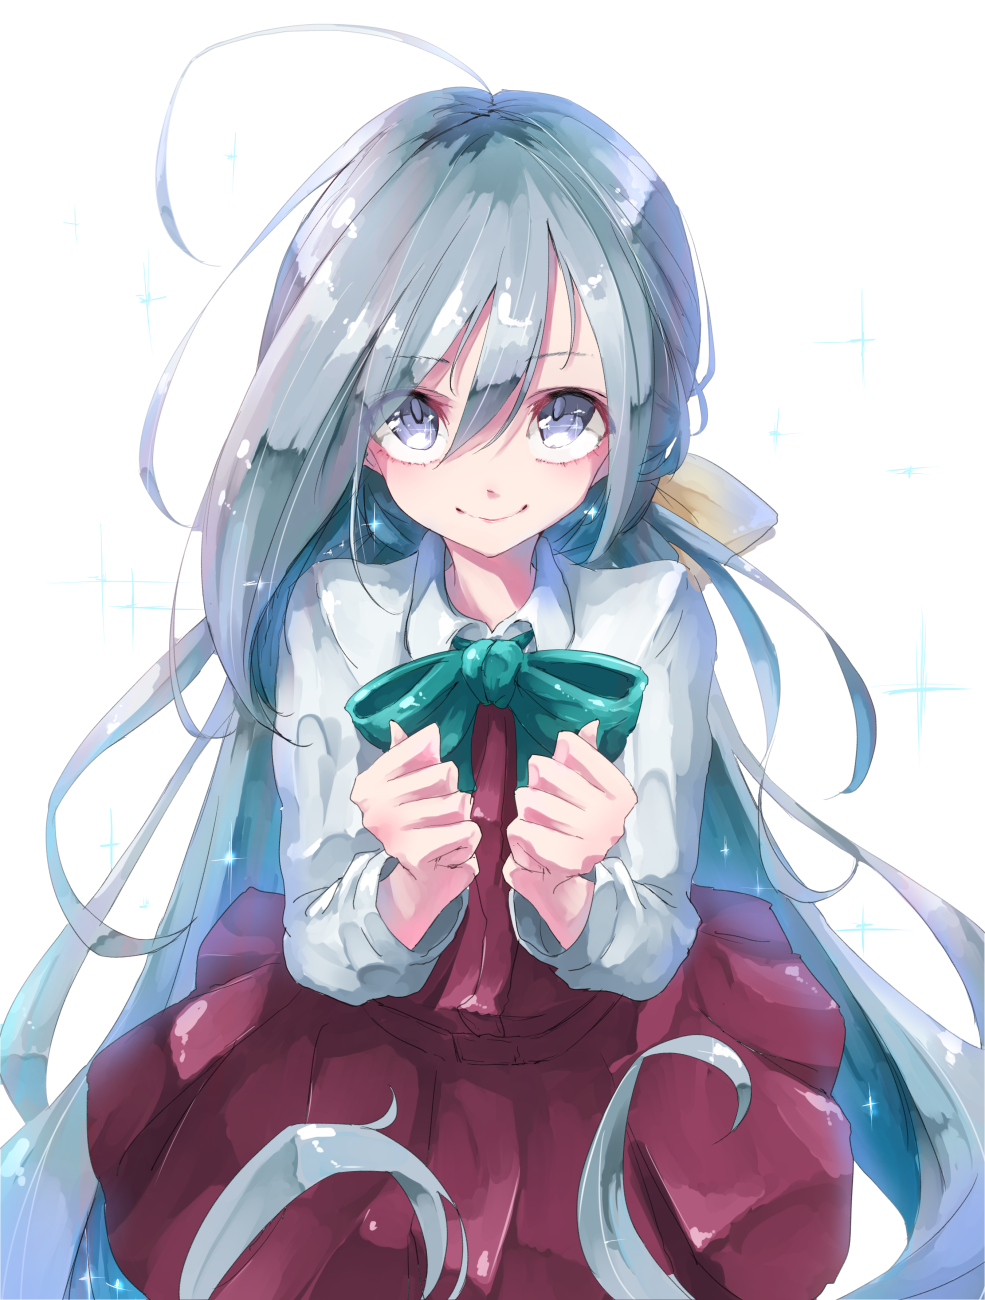 1girl blue_bow blue_eyes blush bow closed_mouth dress eyebrows_visible_through_hair hair_between_eyes highres kantai_collection kiyoshimo_(kantai_collection) long_dress long_hair ninniku_mashimashi shirt silver_hair simple_background smile solo very_long_hair white_background white_shirt